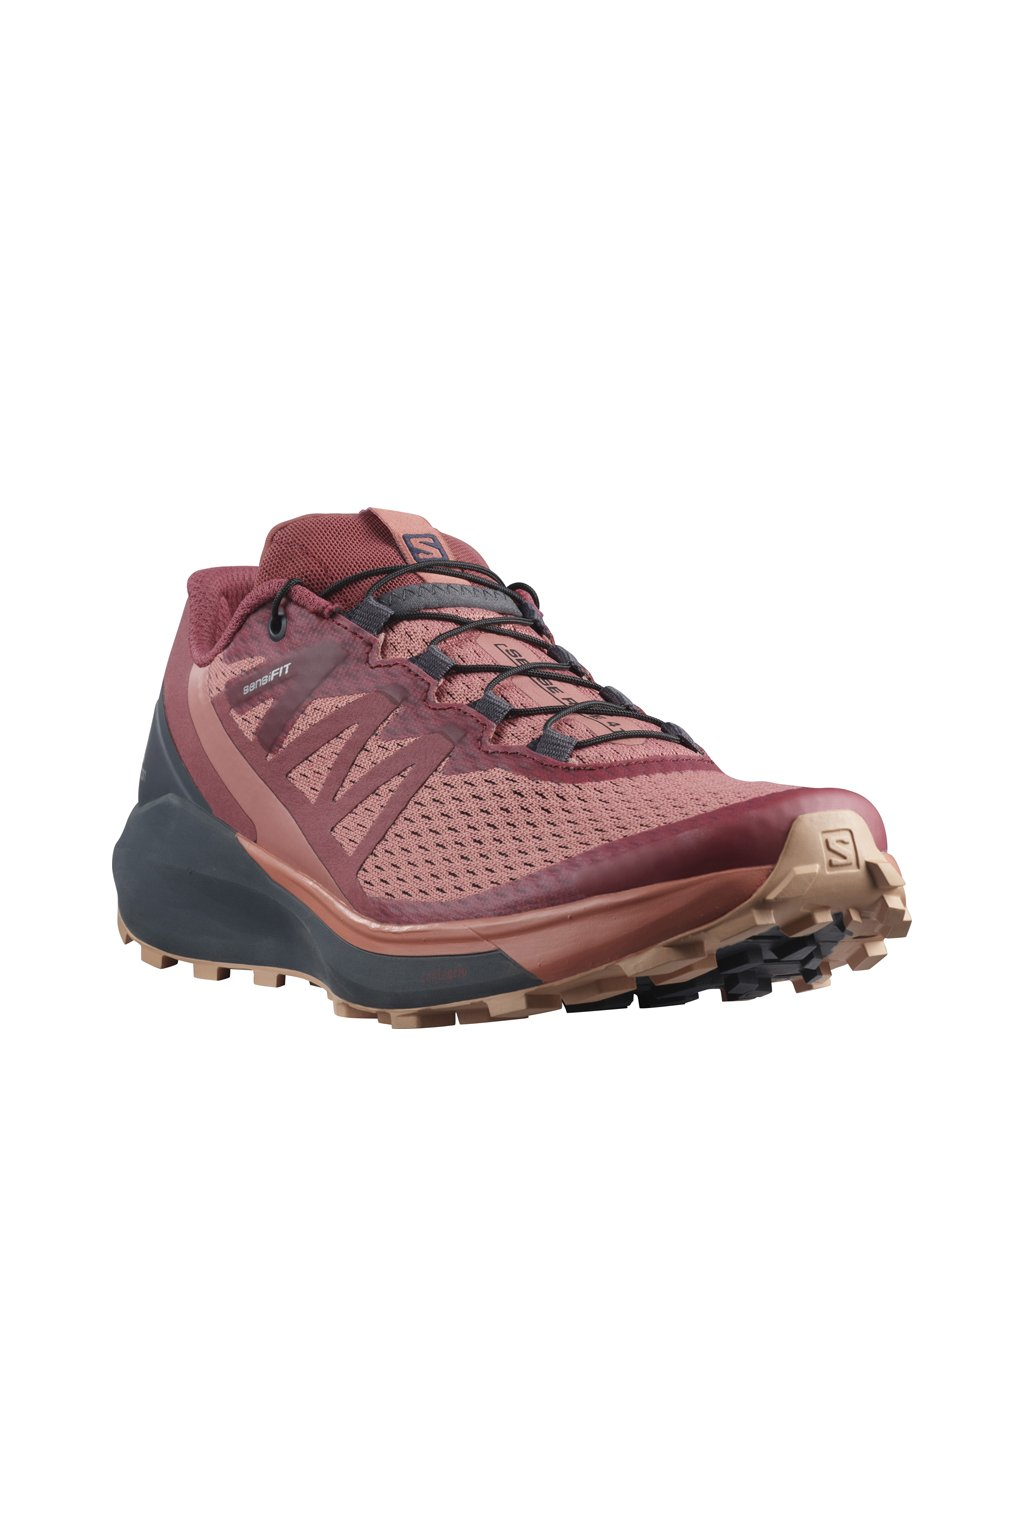 salomon sense ride 4 w 3 (1)